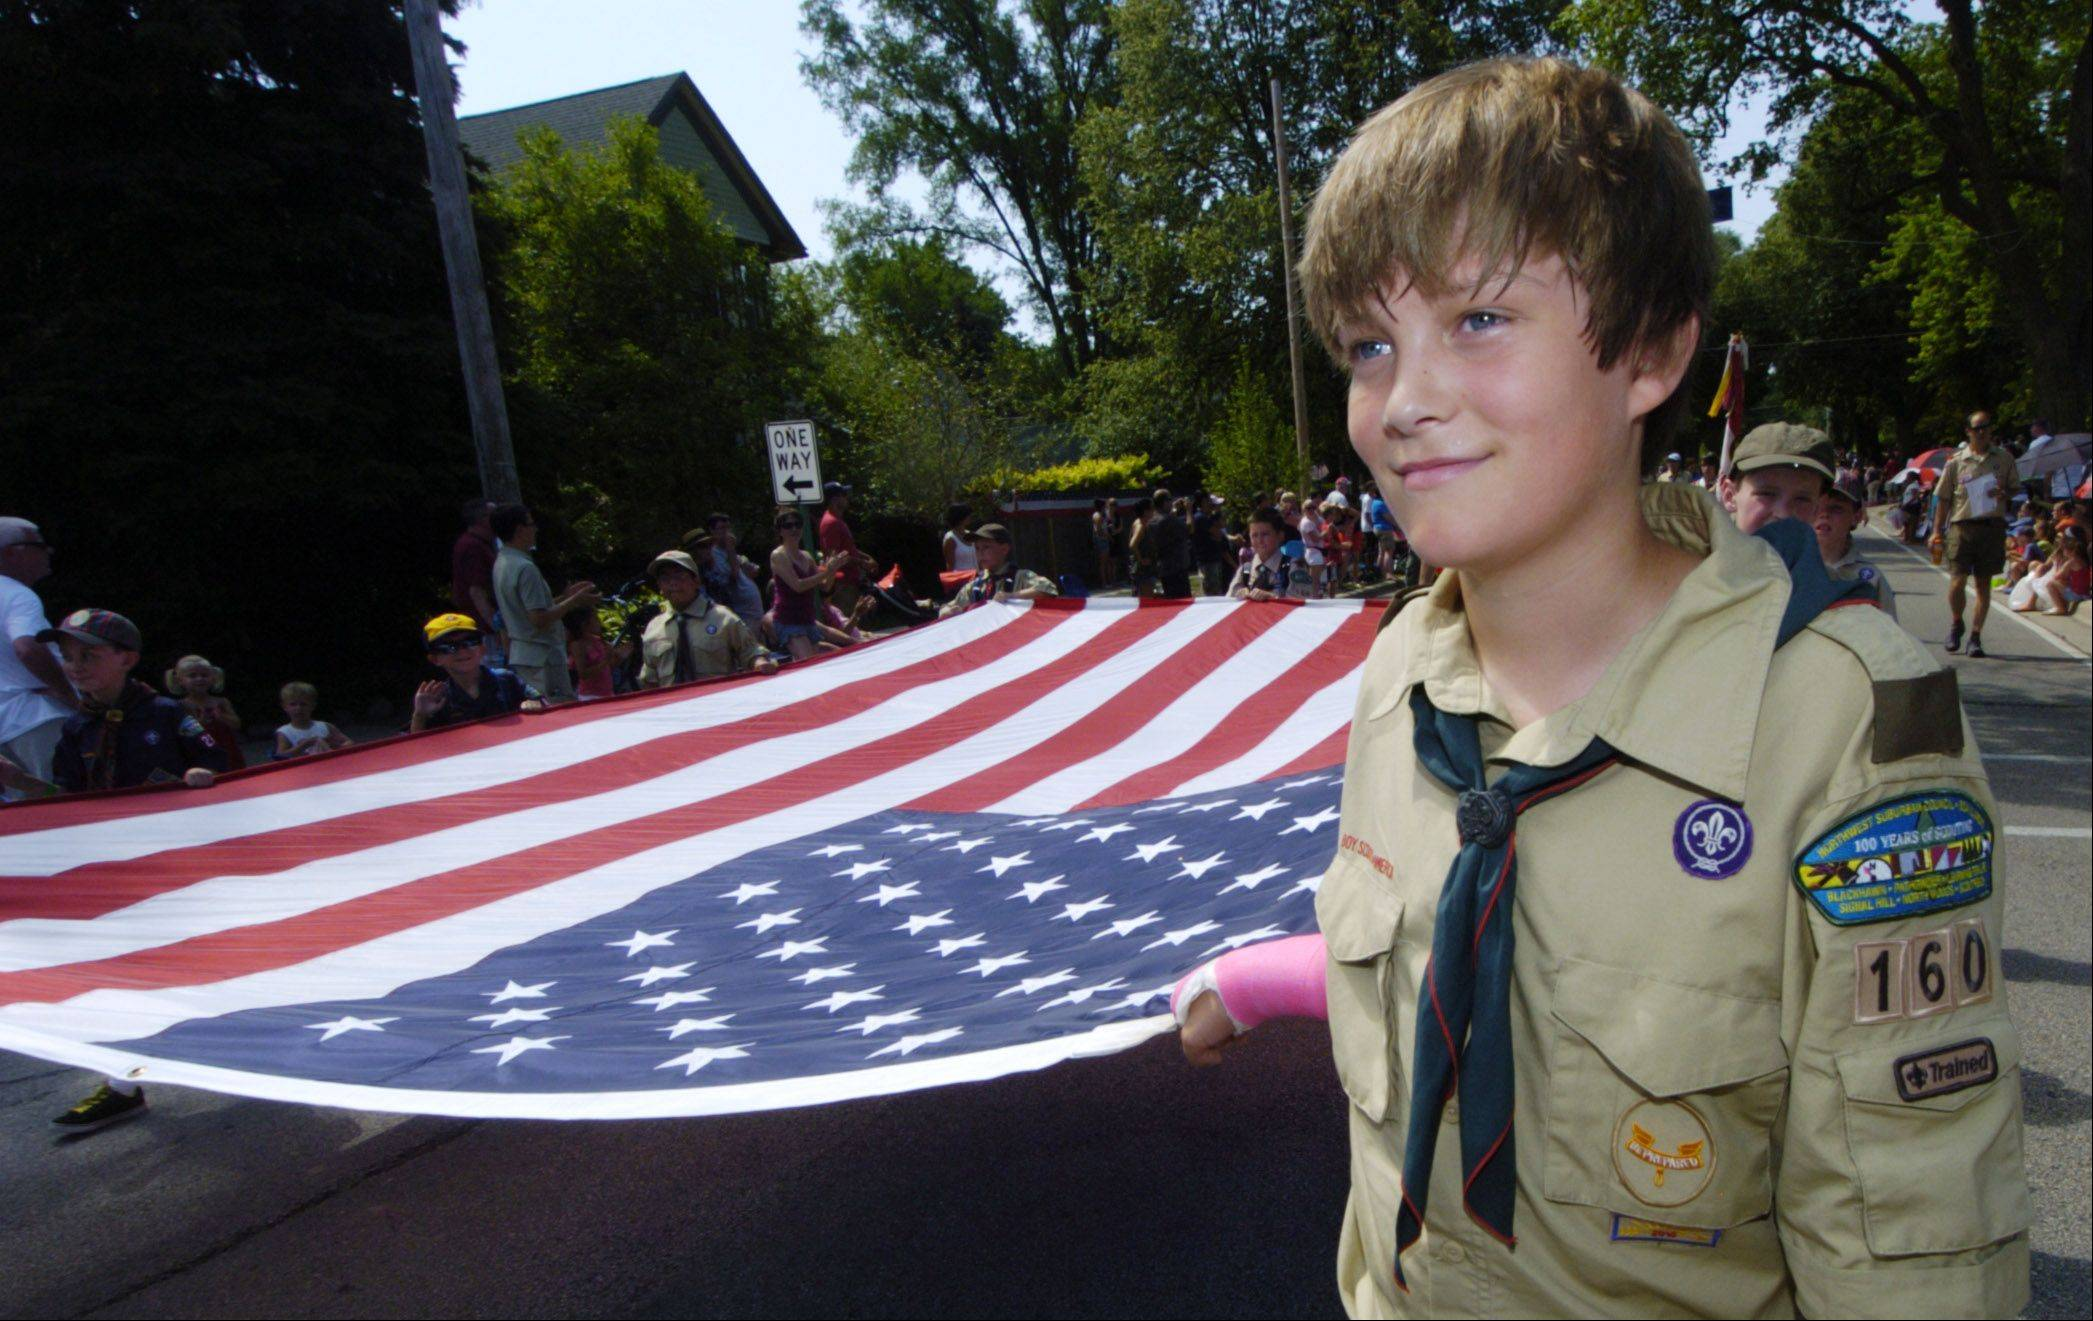 Philip Holzer, 13, helps carry the American Flag while marching with Boy Scout Troop 160 during the Des Plaines Fourth of July parade Wednesday.